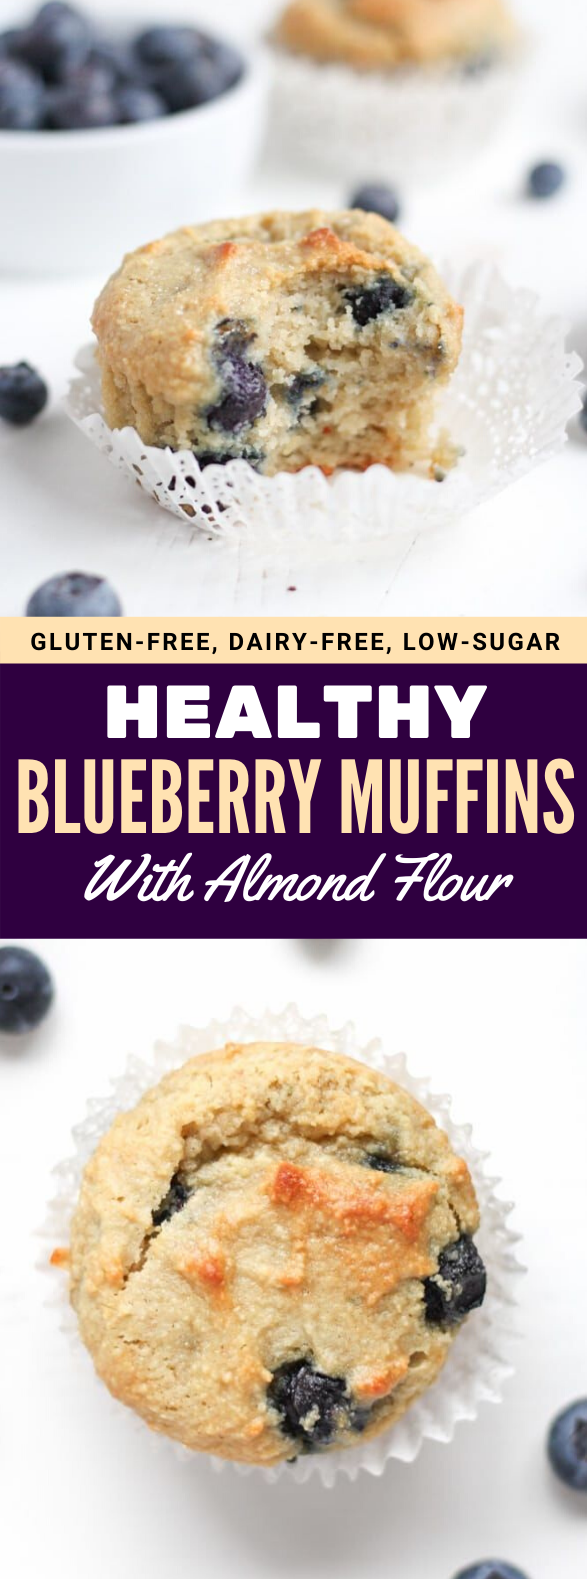 GLUTEN FREE BLUEBERRY MUFFINS (WITH ALMOND FLOUR) #healthy #diet #blueberry #glutenfree #lowcarb #almondflourbiscuits GLUTEN FREE BLUEBERRY MUFFINS (WITH ALMOND FLOUR) #healthy #diet #blueberry #glutenfree #lowcarb